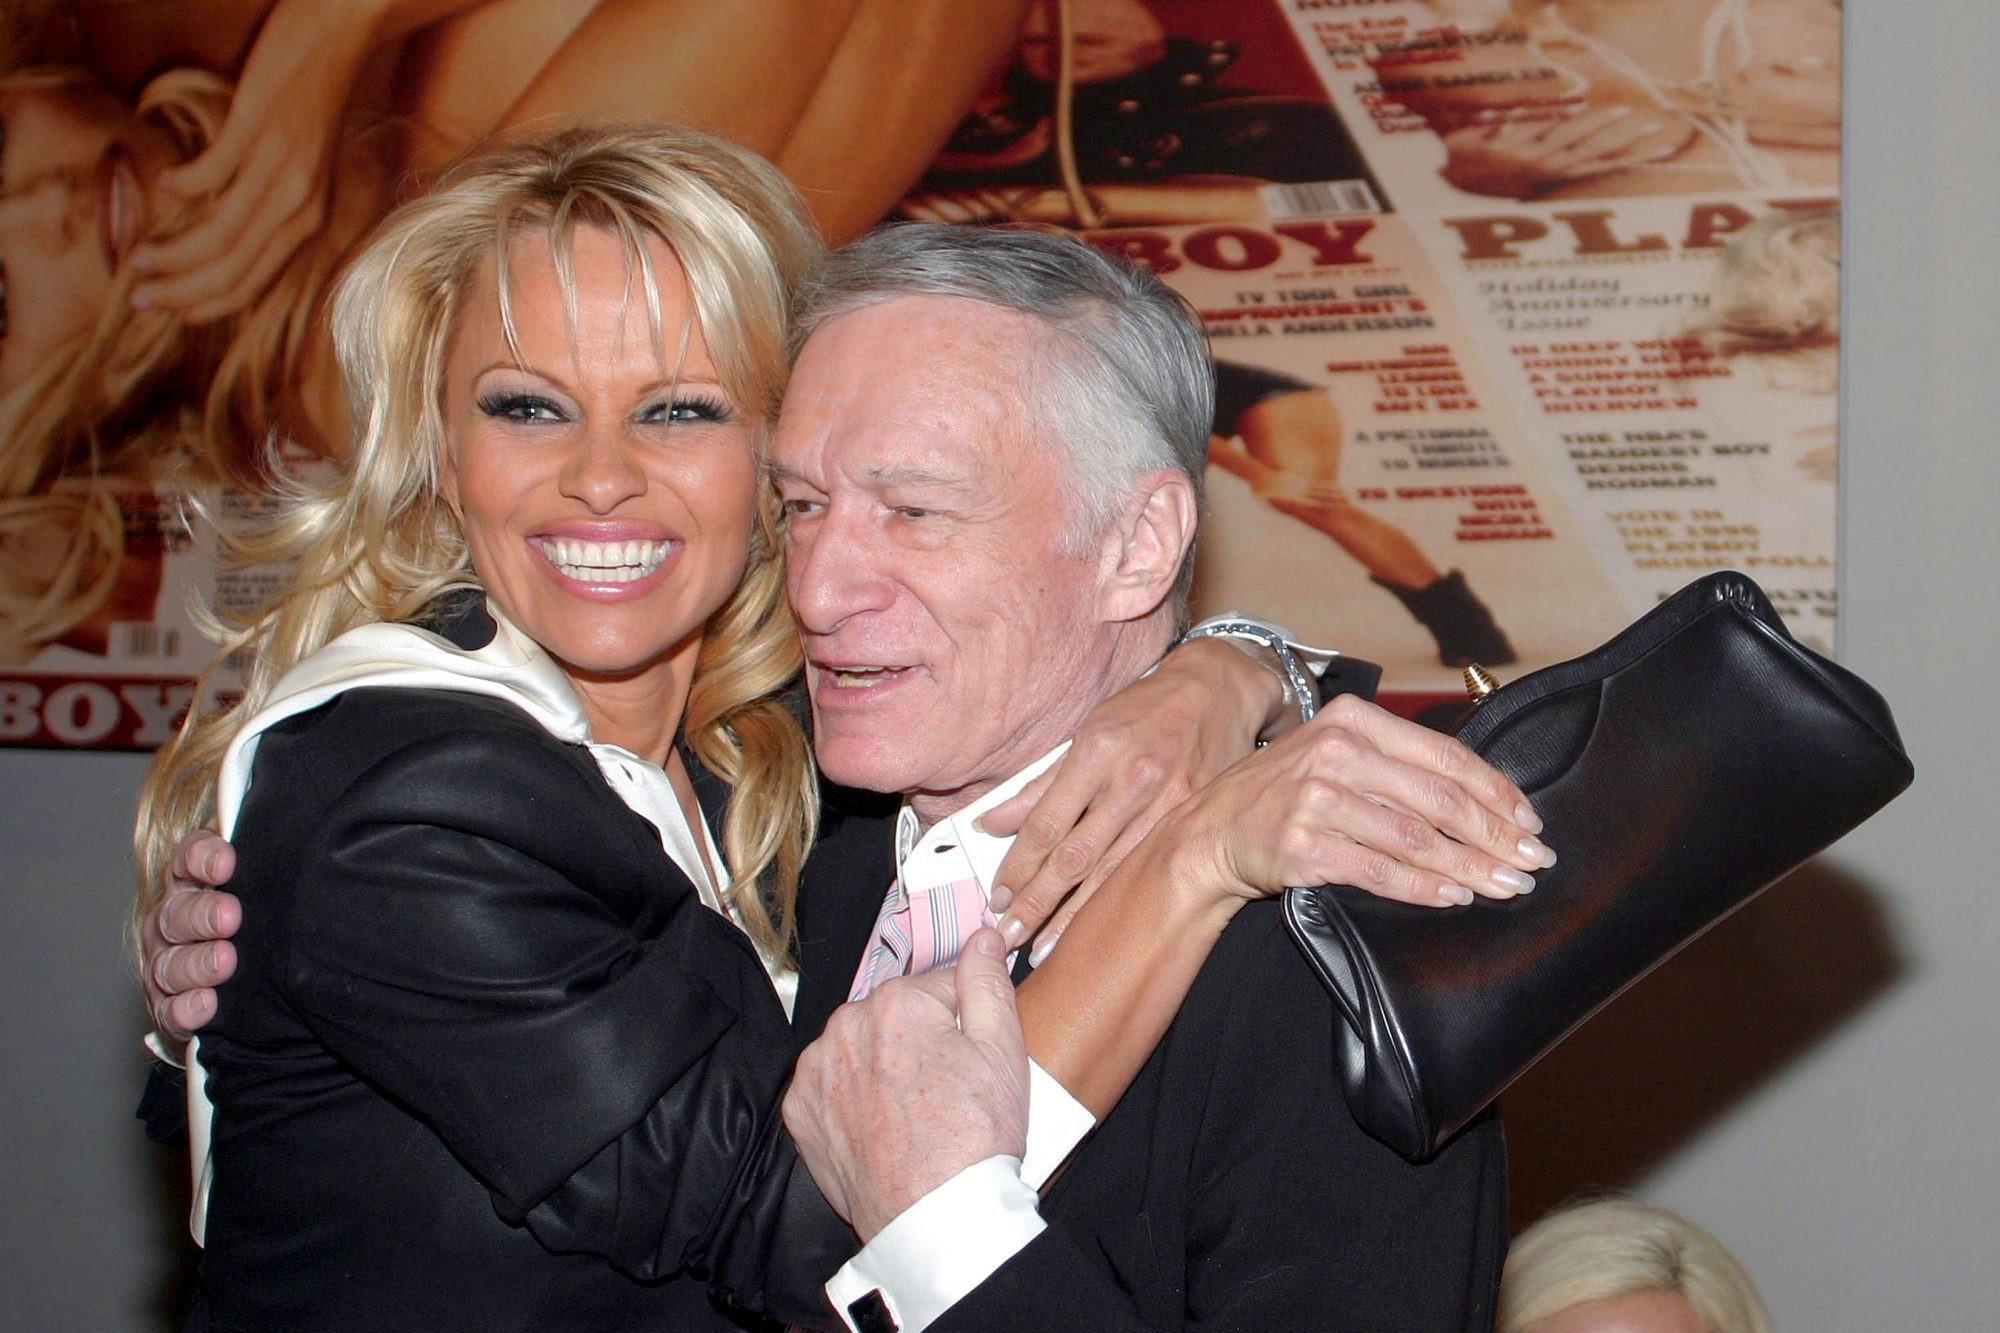 Hugh Hefner and International Images Launch the Playboy Legacy Collection